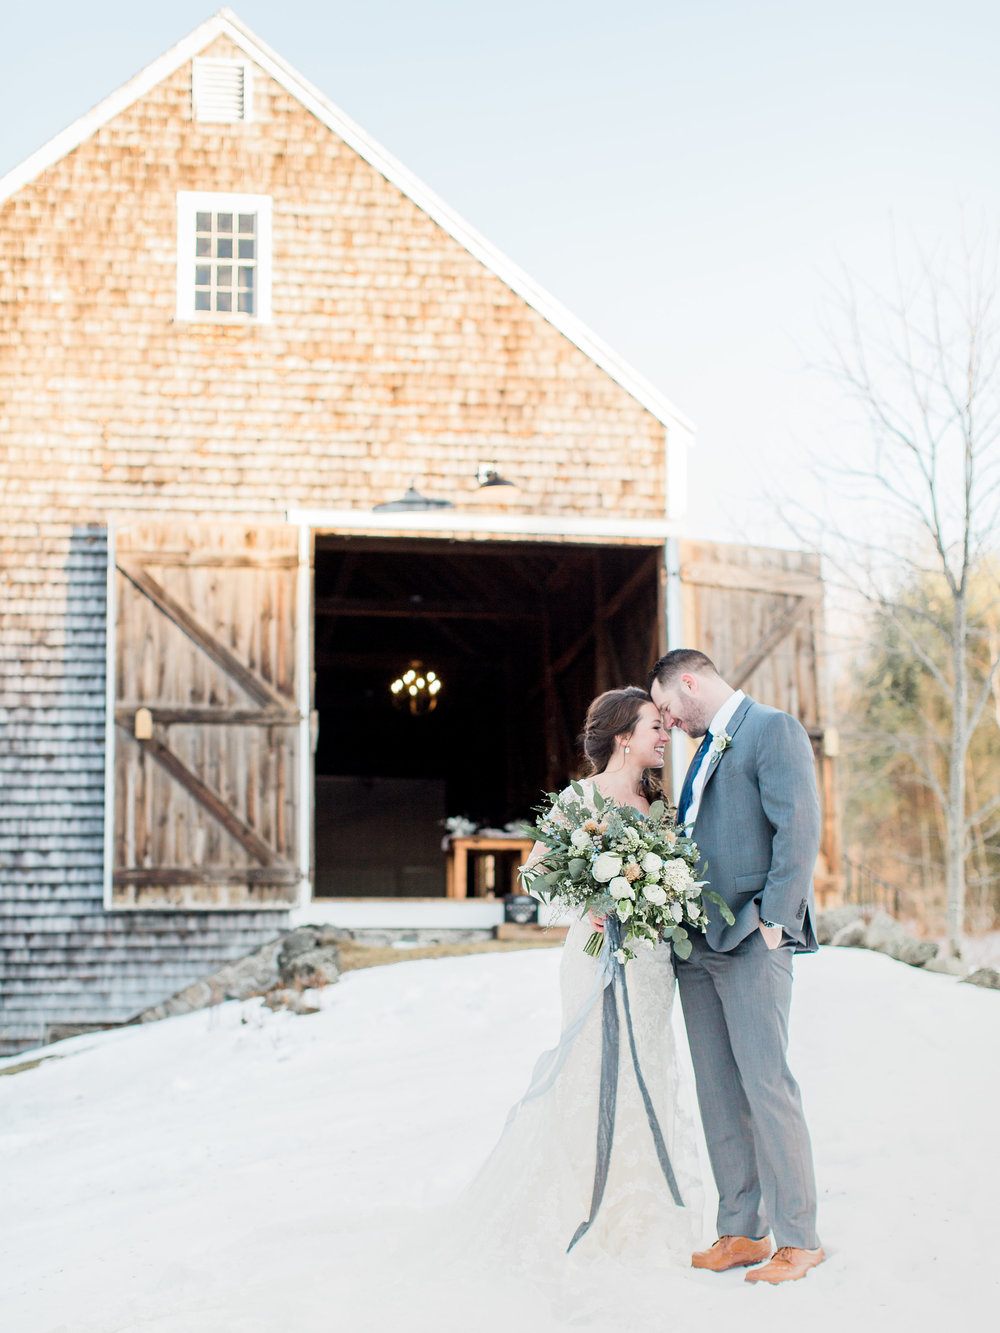 Cunningham_Farm_Winter_Styled_Wedding_Shoot_Meredith_Jane_Photography-207.jpg